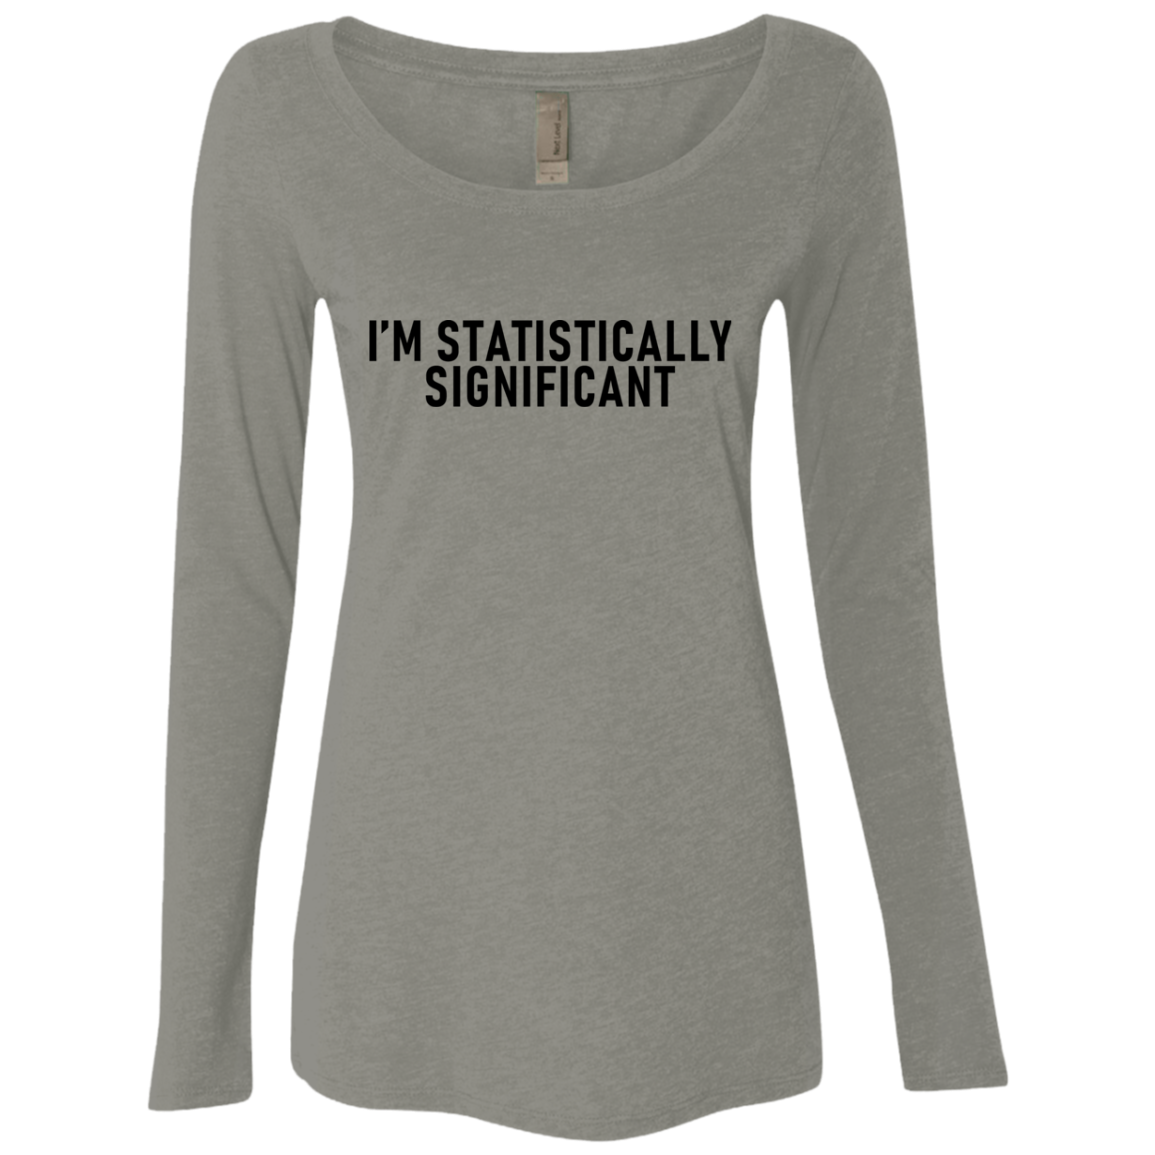 I'm Statistically Significant Women's Long Sleeve Tee